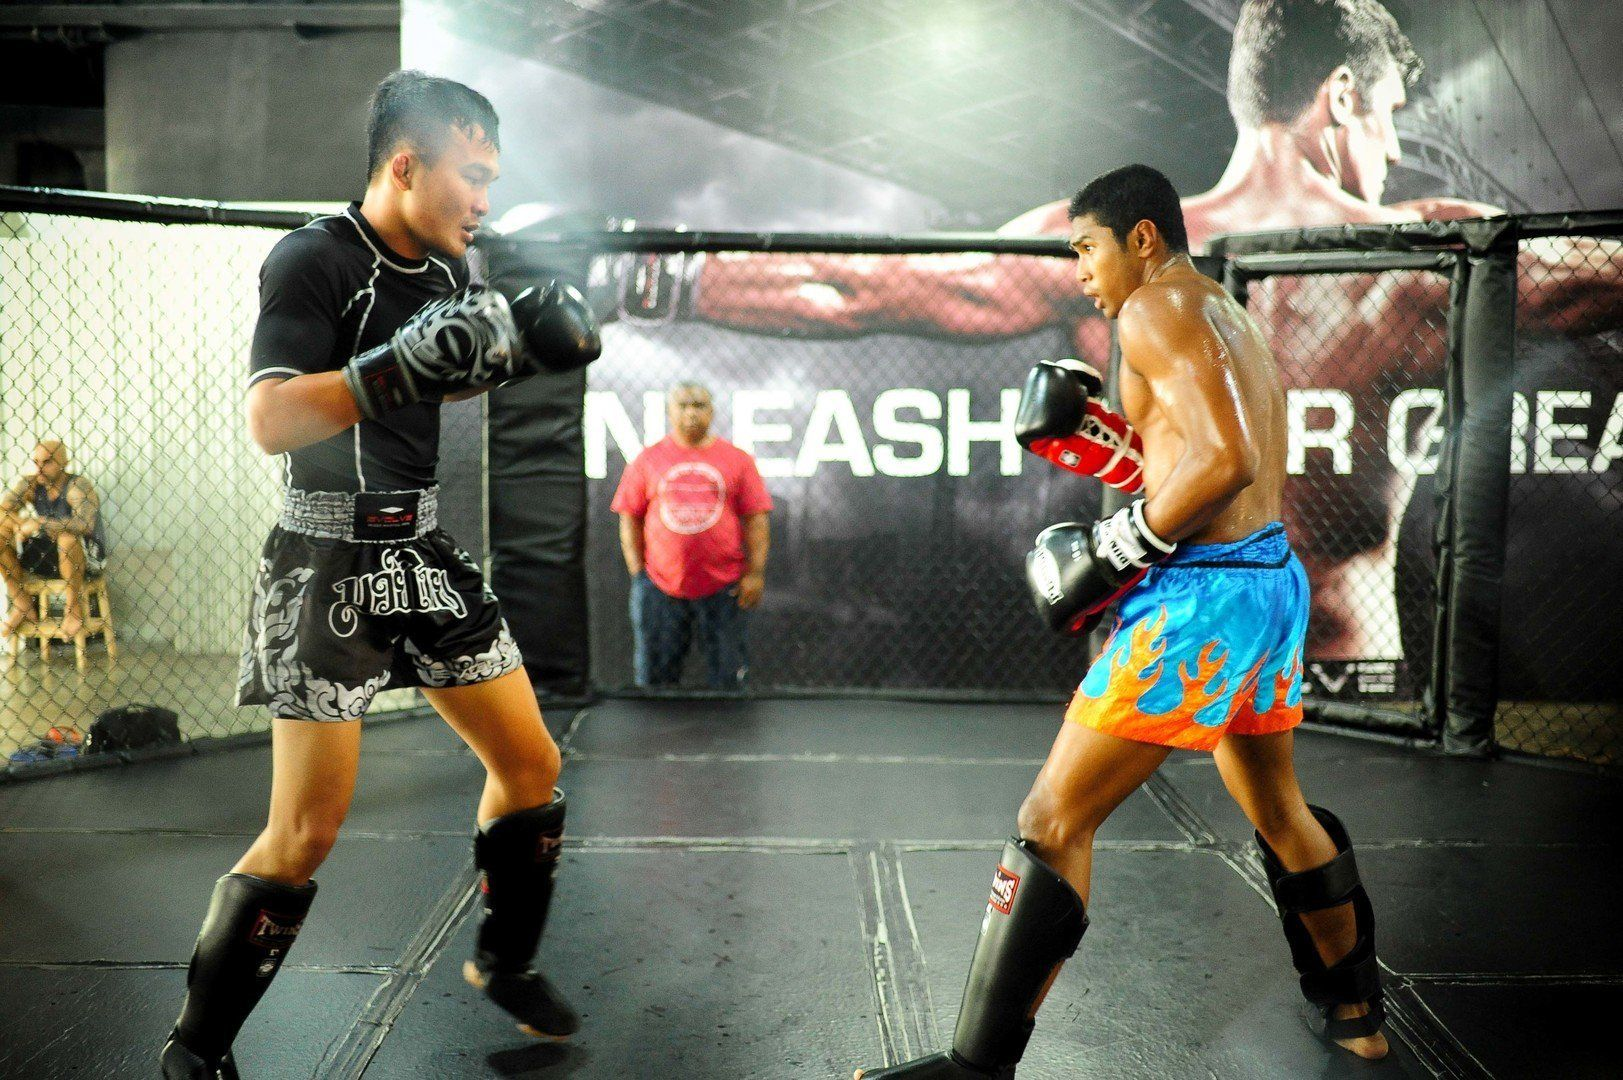 Sparring is a great way to take your game to greater heights.